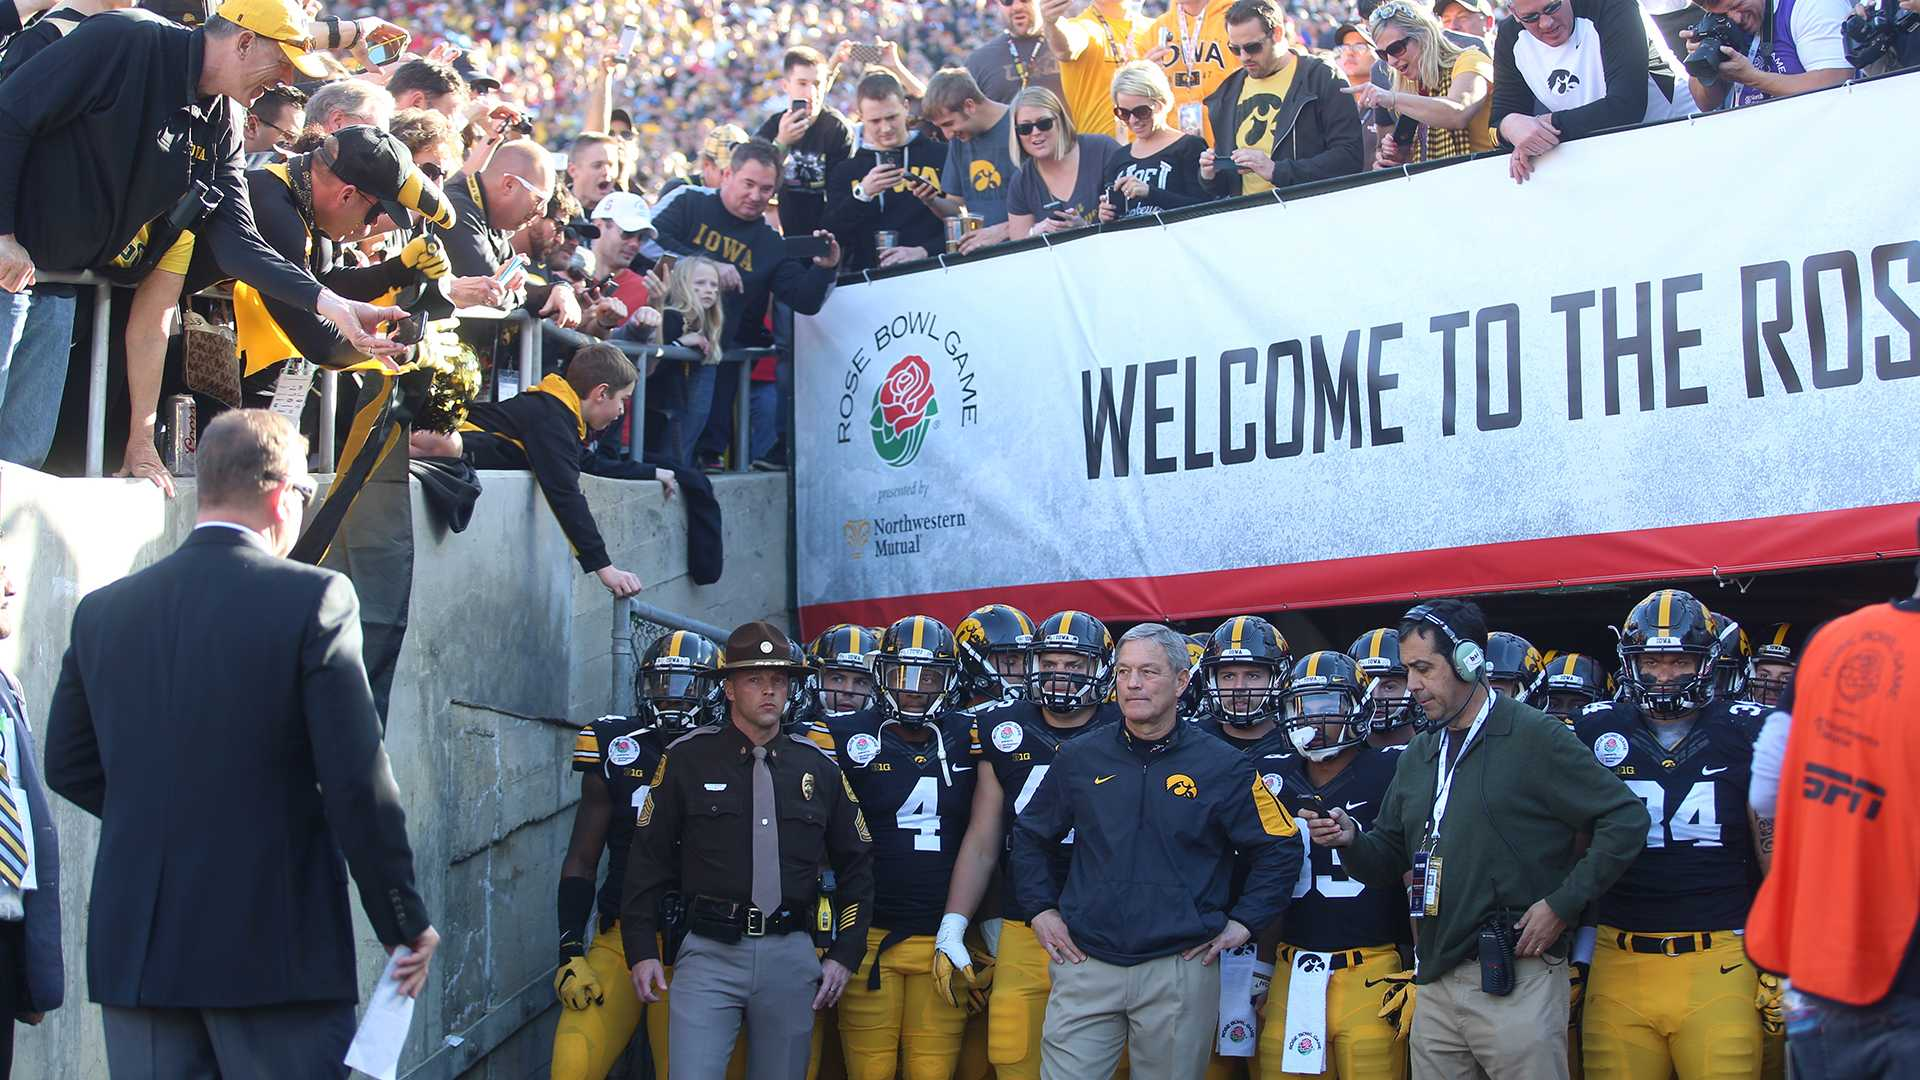 Iowa fans cheer for the team as they prepare to run out of the tunnel before the Rose Bowl Game in Rose Bowl Stadium in Pasadena, California on Friday, Jan. 1, 2016. Stanford defeated Iowa, 45-16. (The Daily Iowan/Alyssa Hitchcock)